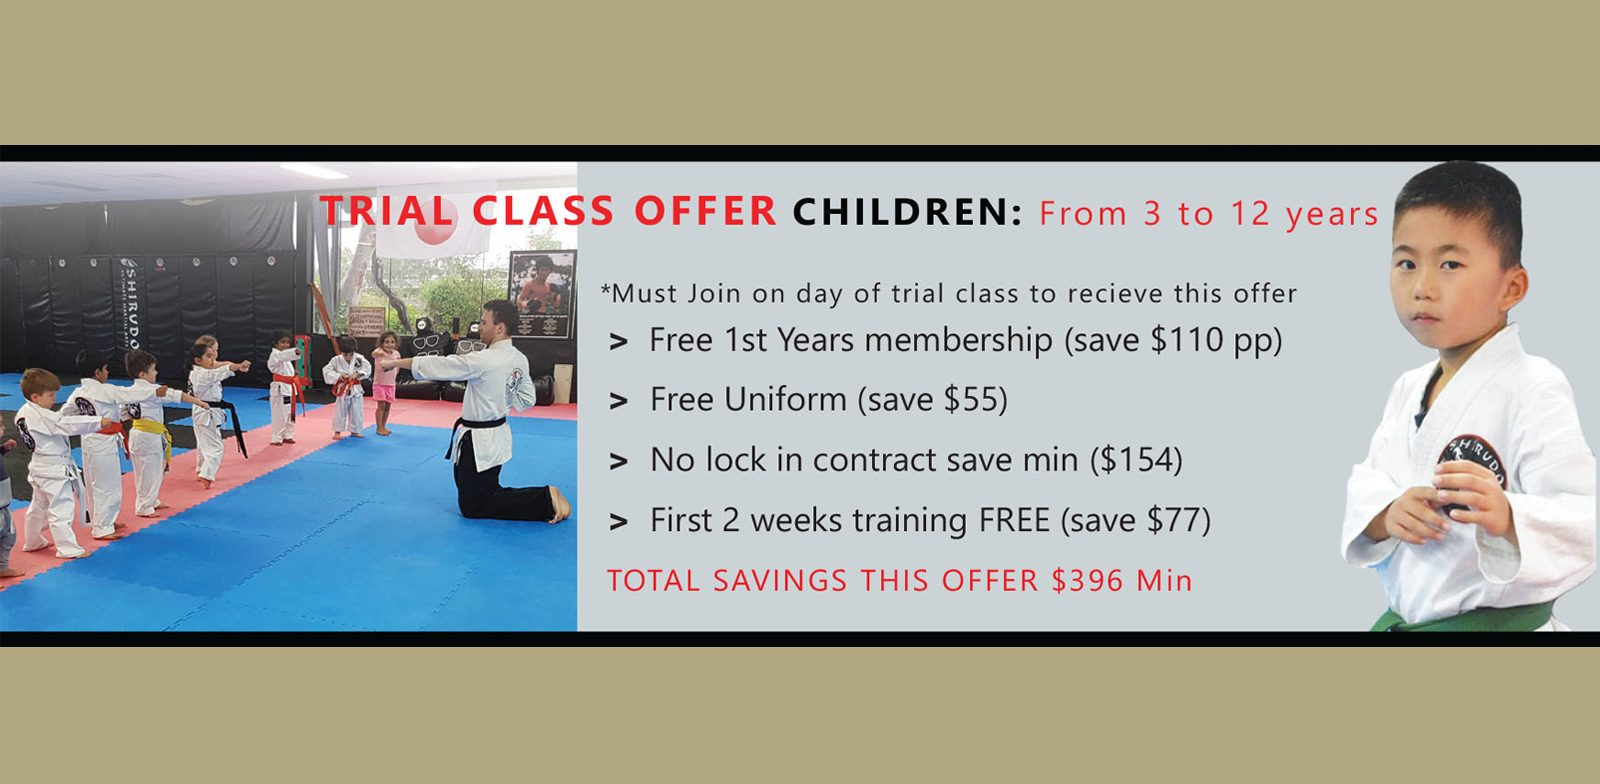 Trial Class Special Offer CHILDREN _ Offer Ends January 31 2021